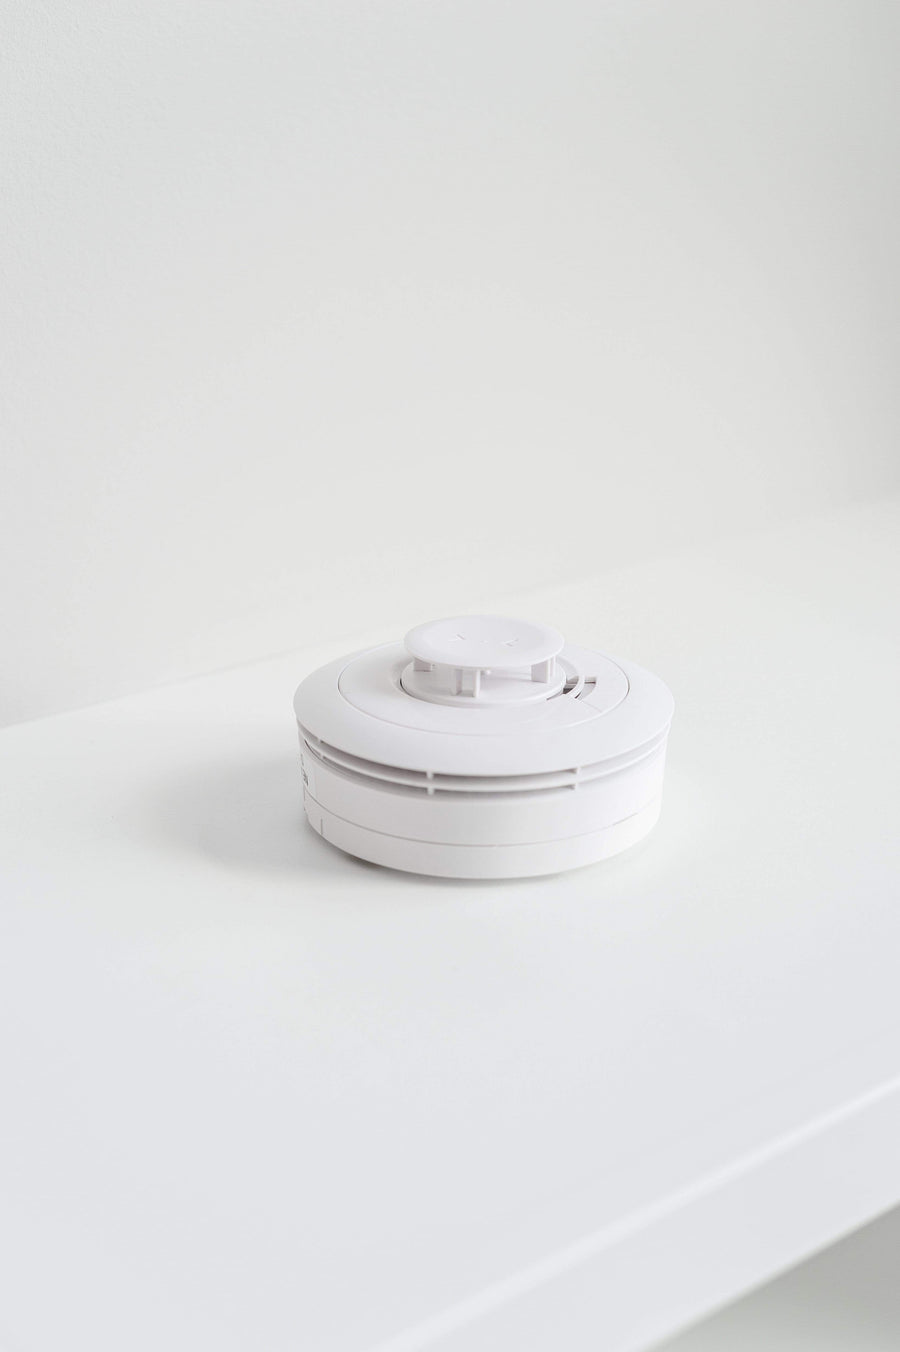 Turnip Home Environmental Sensor Smoke Detector